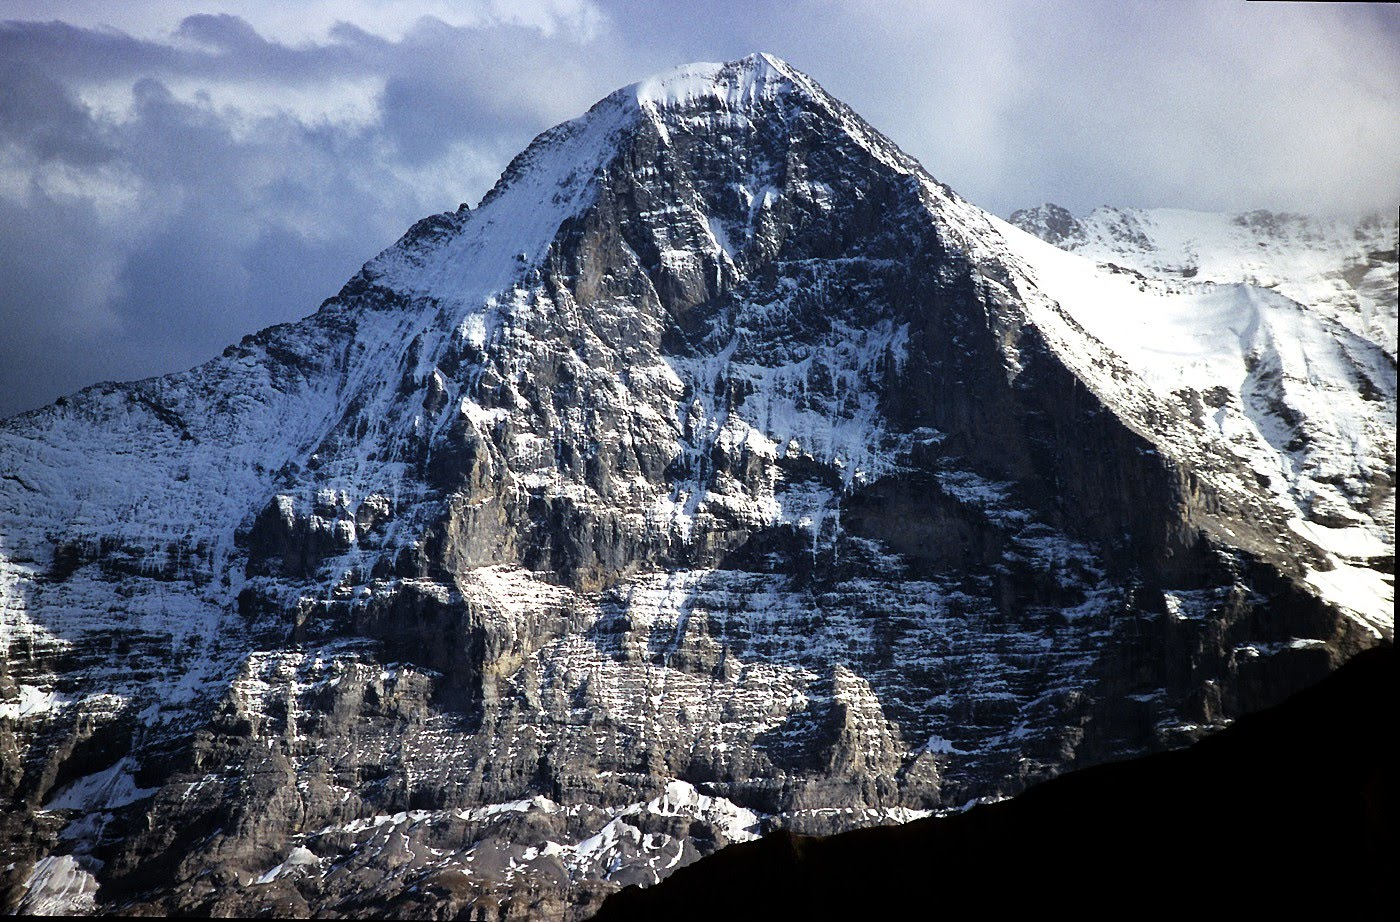 Climbing the Eiger - 6 days